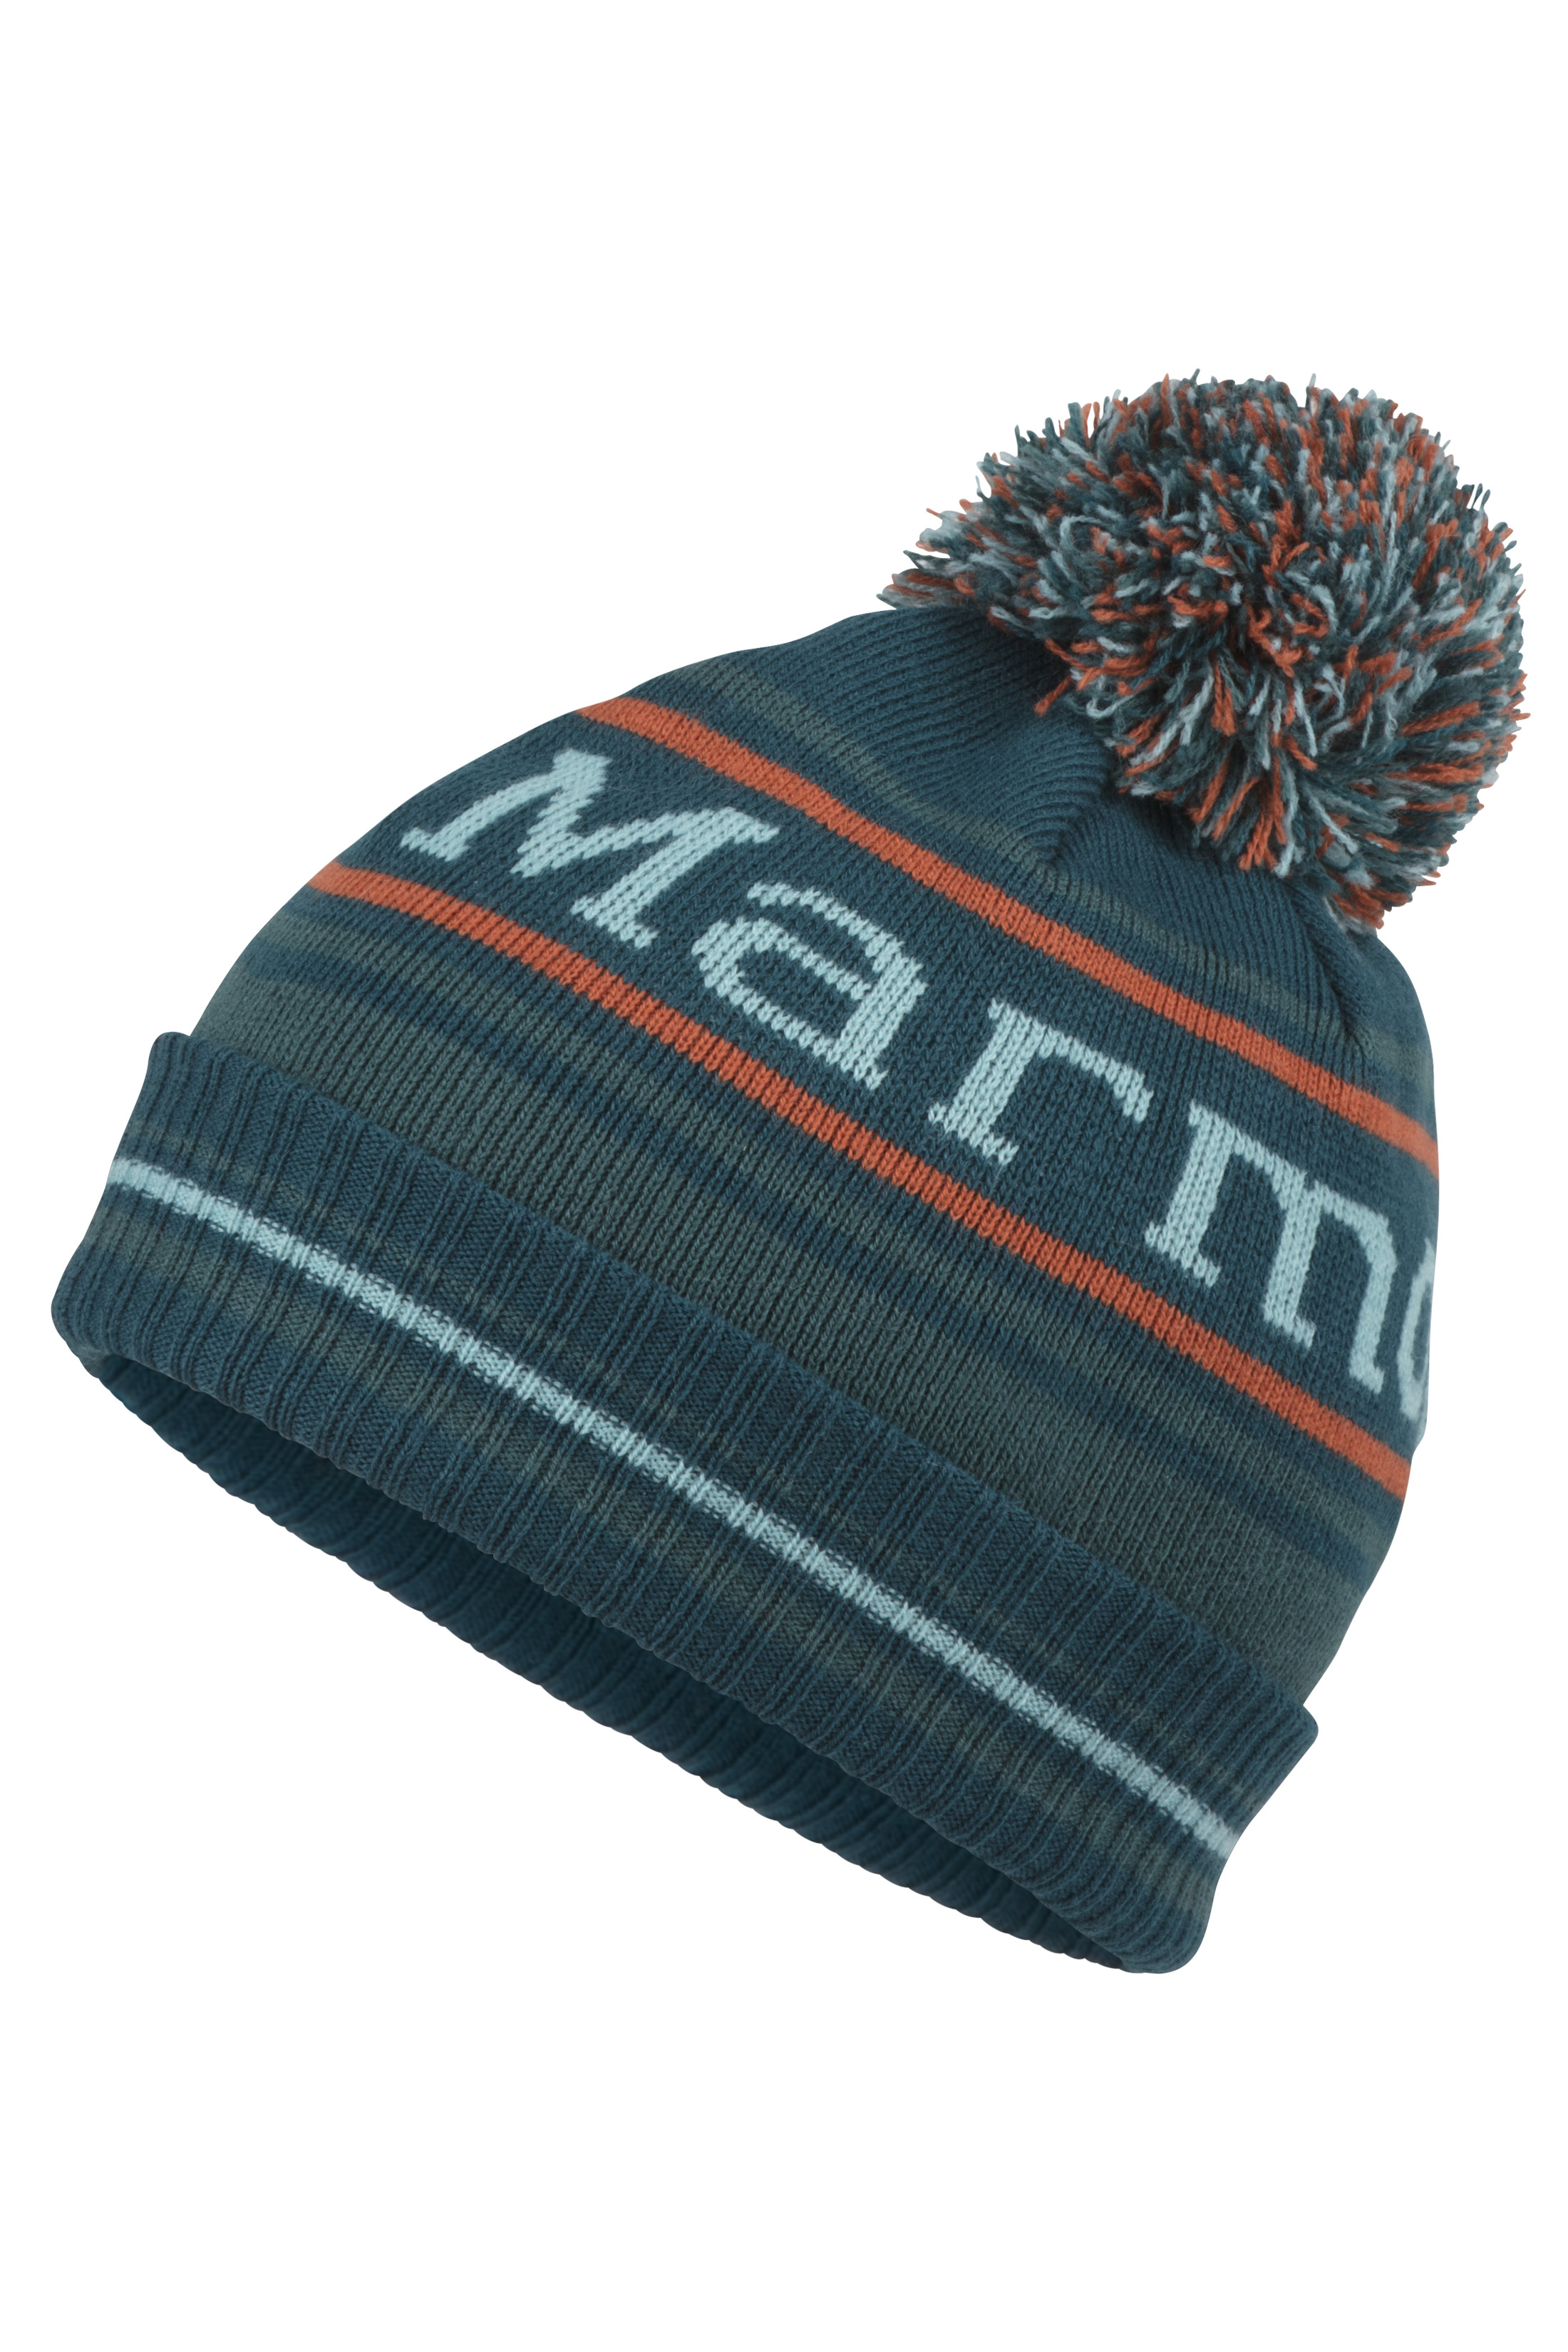 010996c71 Marmot Retro Pom Hat - Boys